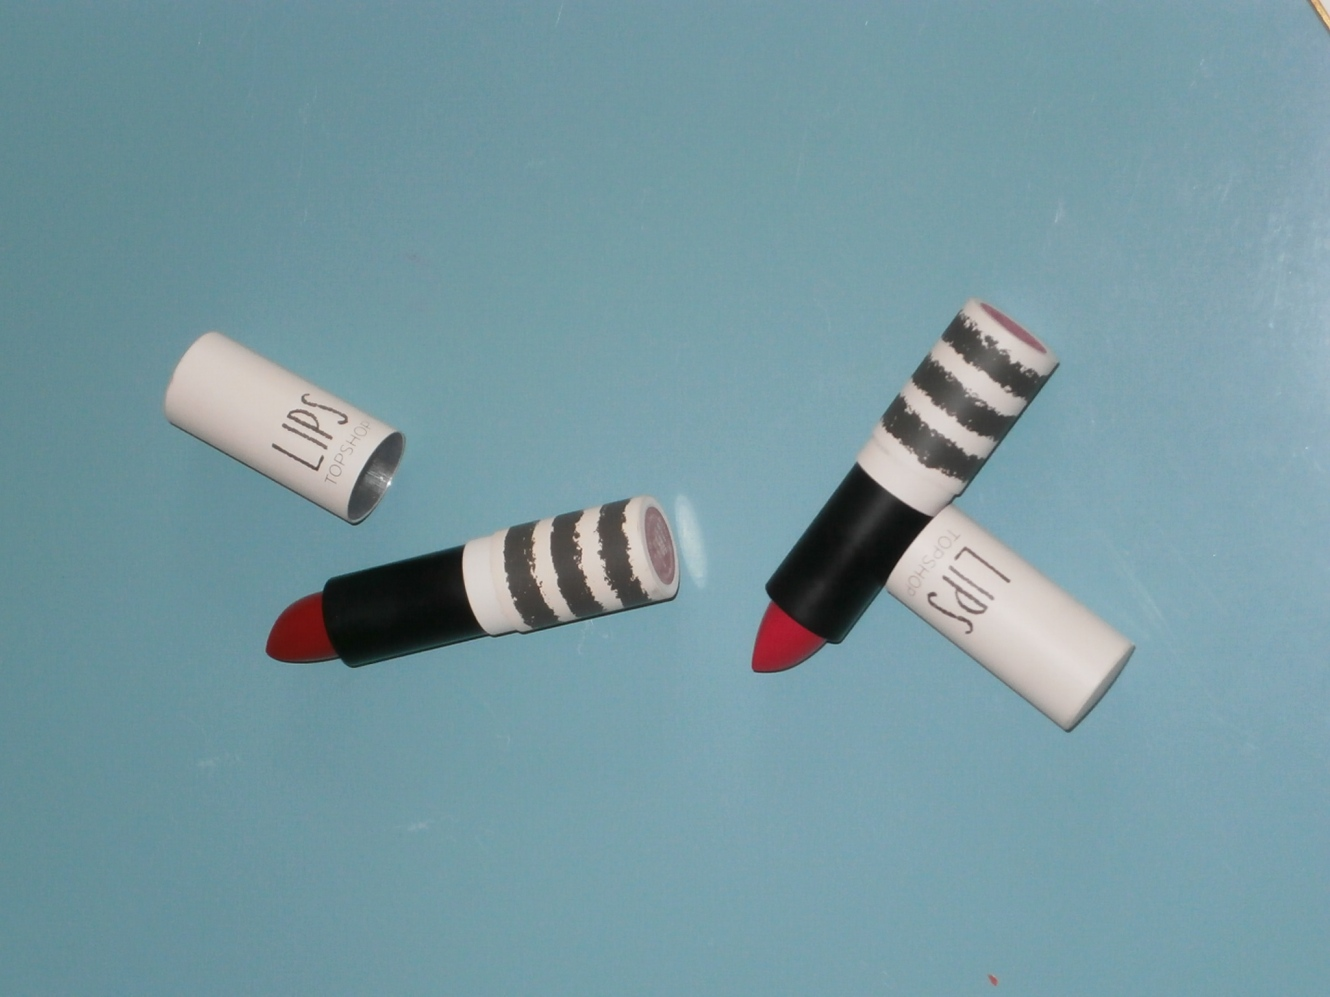 Topshop's satin lipsticks are fresh, fun and affordable